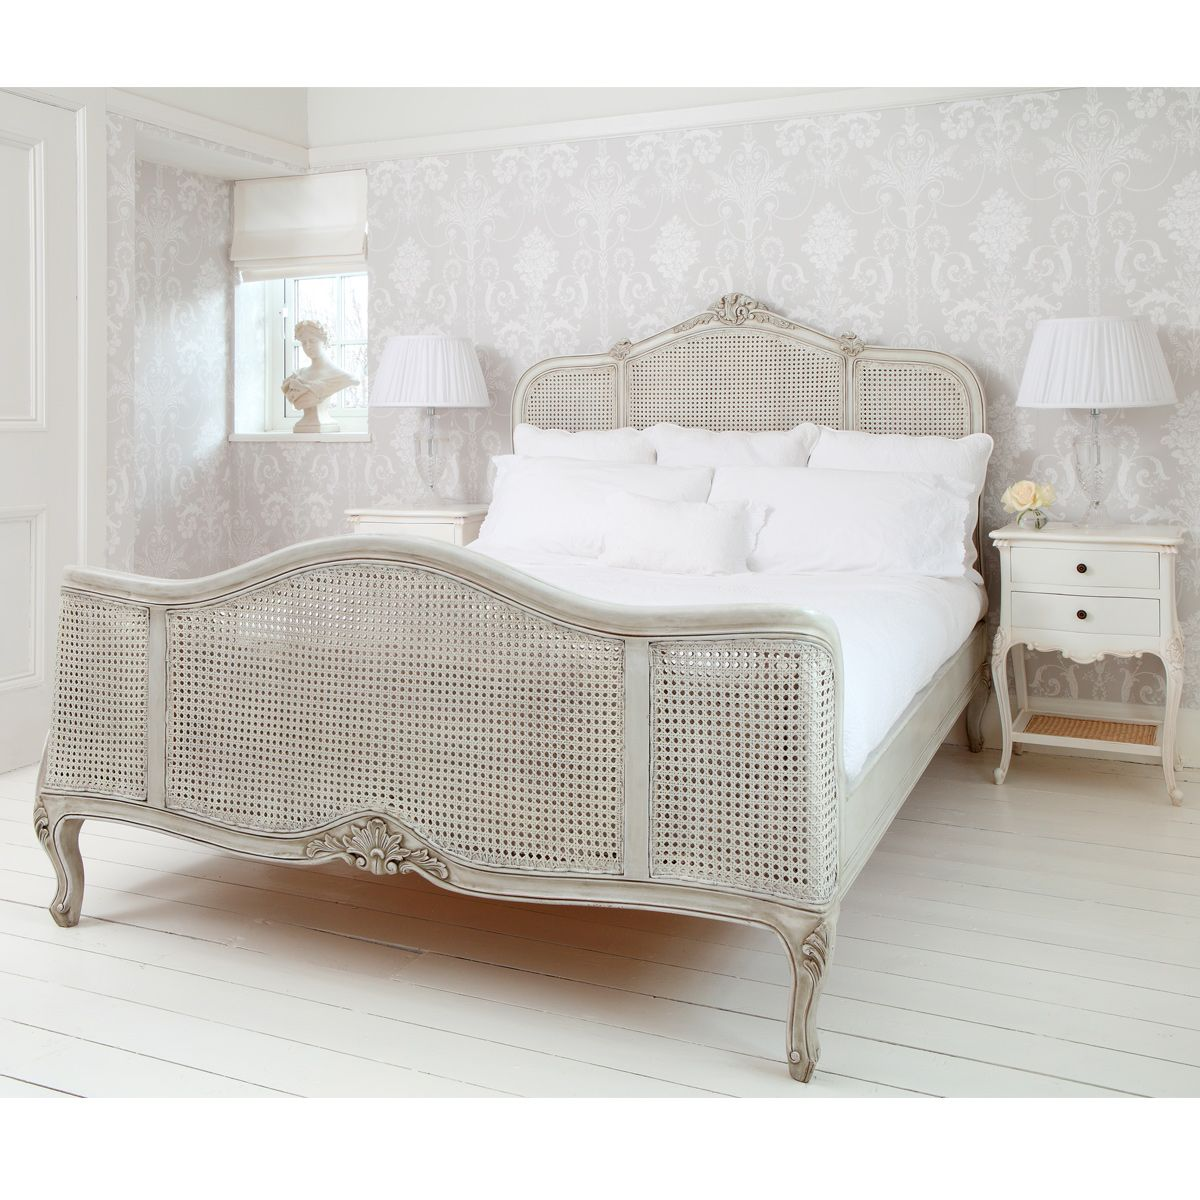 French Bedroom Black And White Teenage Bedroom Wallpaper Uk Wooden Bedroom Blinds Bedroom Oasis Decorating Ideas: French Grey Painted Rattan Bed